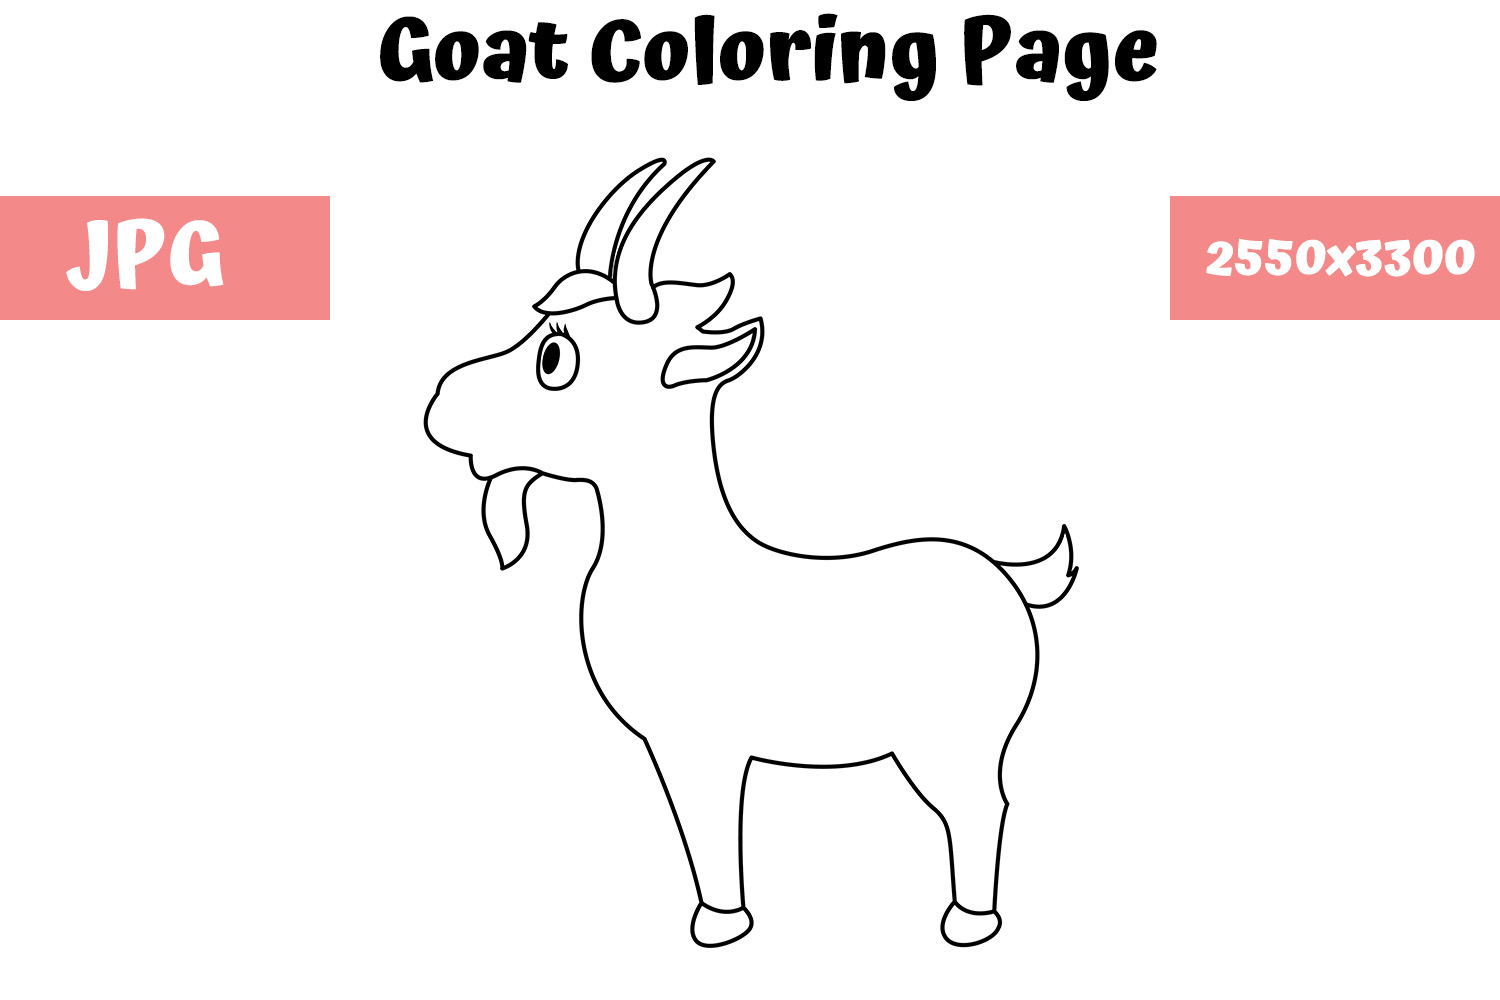 Download Free Goat Coloring Page For Kids Graphic By Mybeautifulfiles for Cricut Explore, Silhouette and other cutting machines.